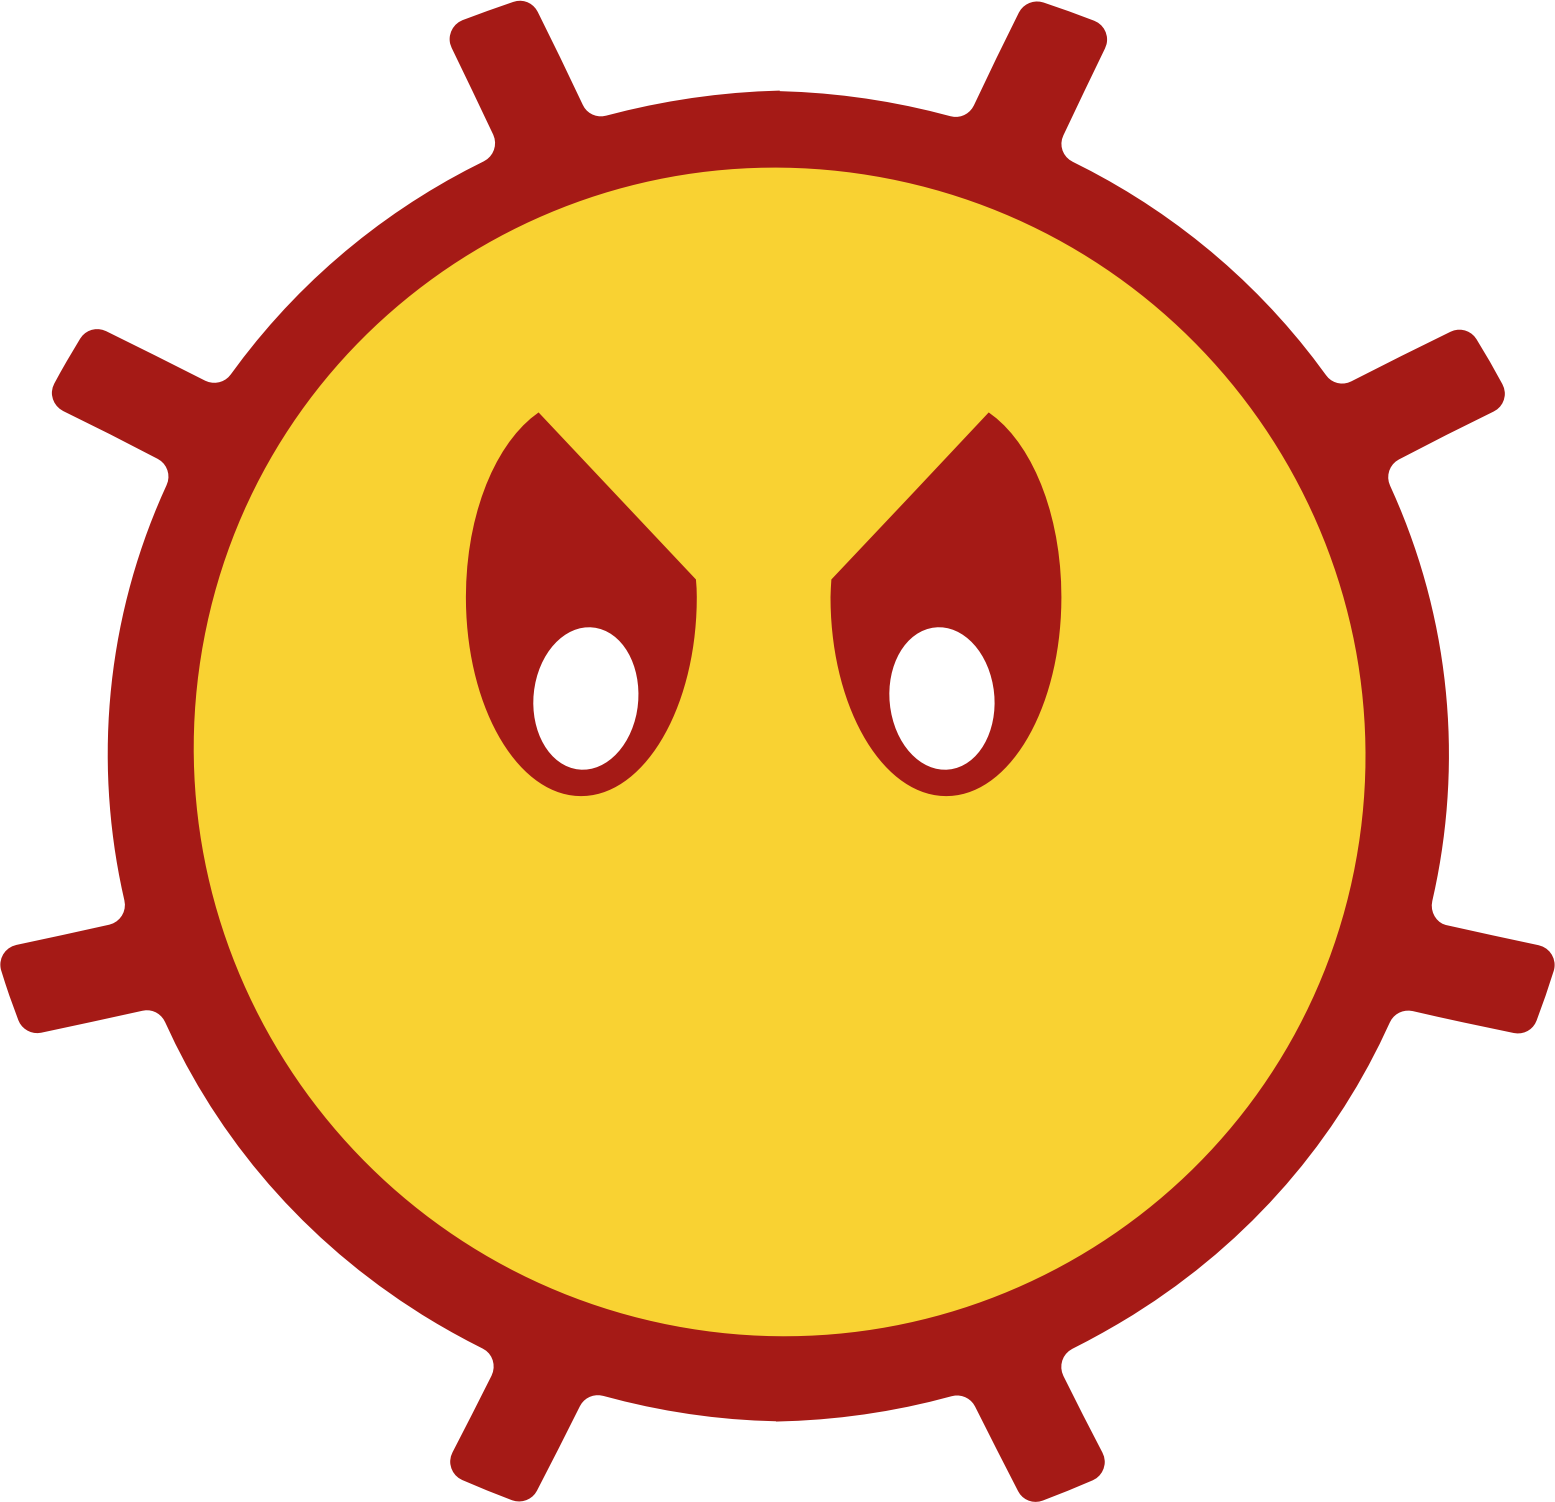 Heat waves png. Wave icons free and